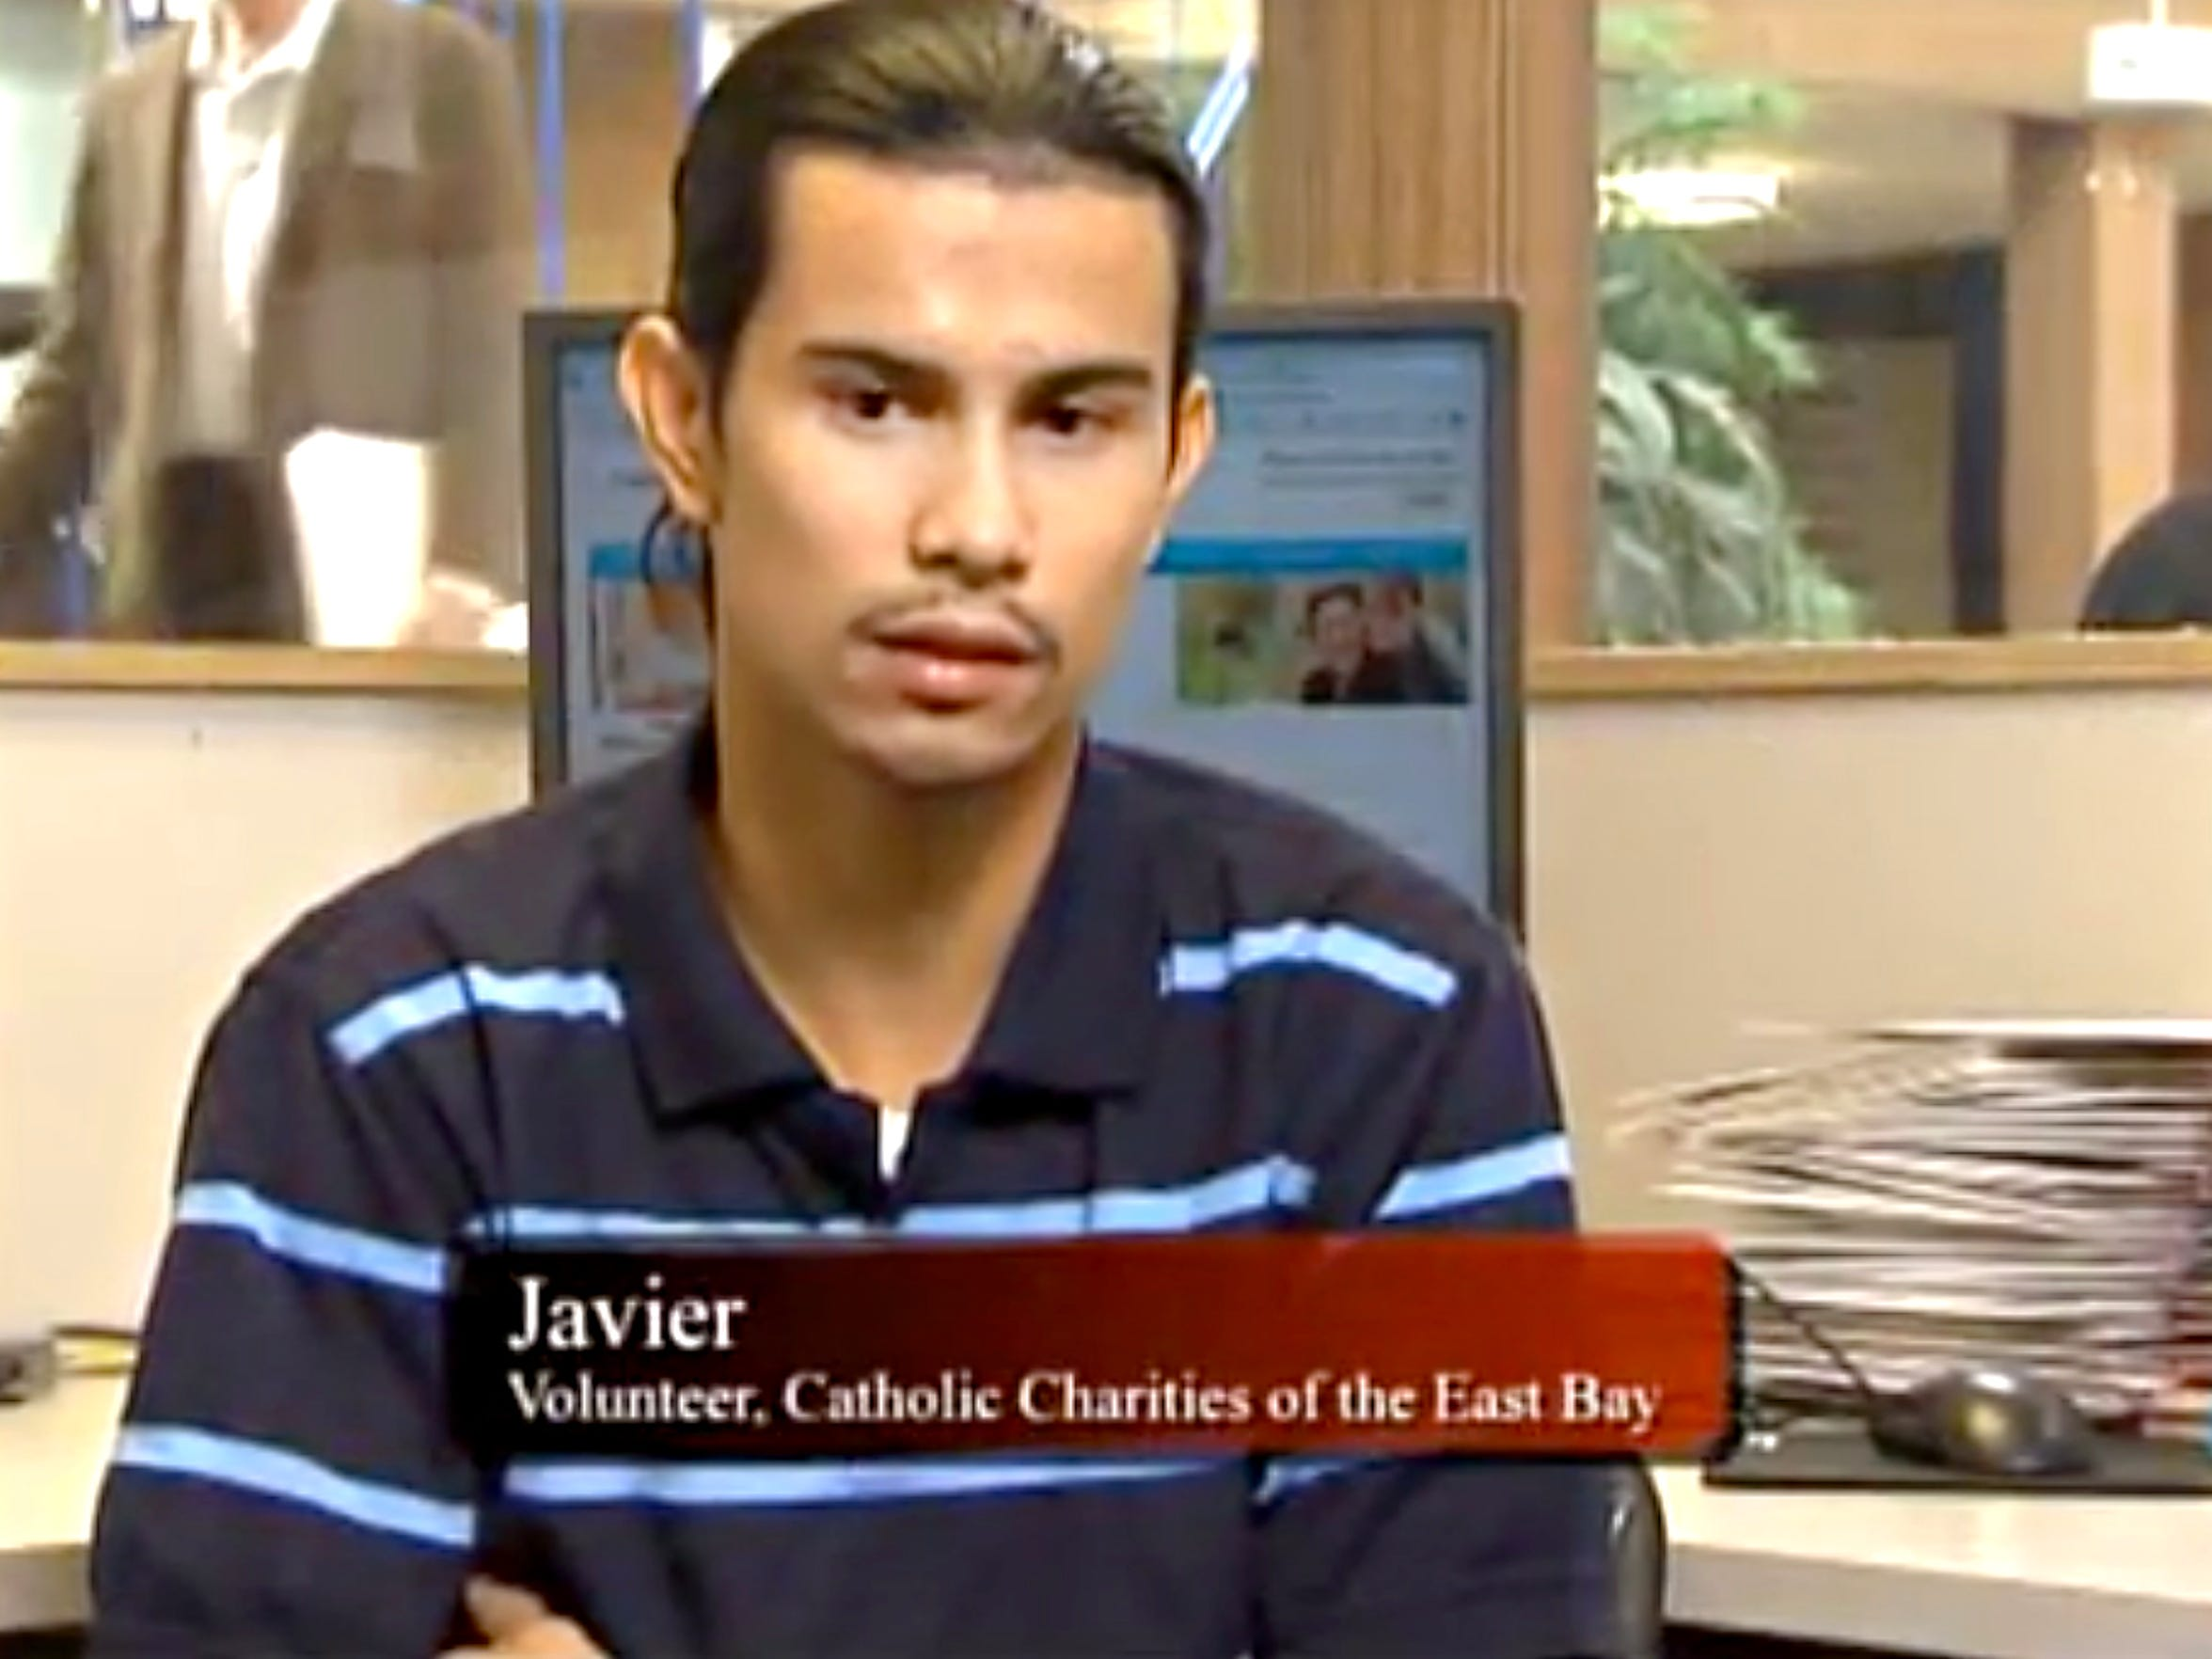 Javier Arango spent years in a gang after a 2006 shooting left him paralyzed and angry. A few years ago, he decided to quit the gang lifestyle and got help finding work through Catholic Charities of East Bay. Here, he's pictured in a promotional video from the organization. Arango is one of nine gunshot survivors featured in Aftermath, an eight-episode podcast about gun violence in America.